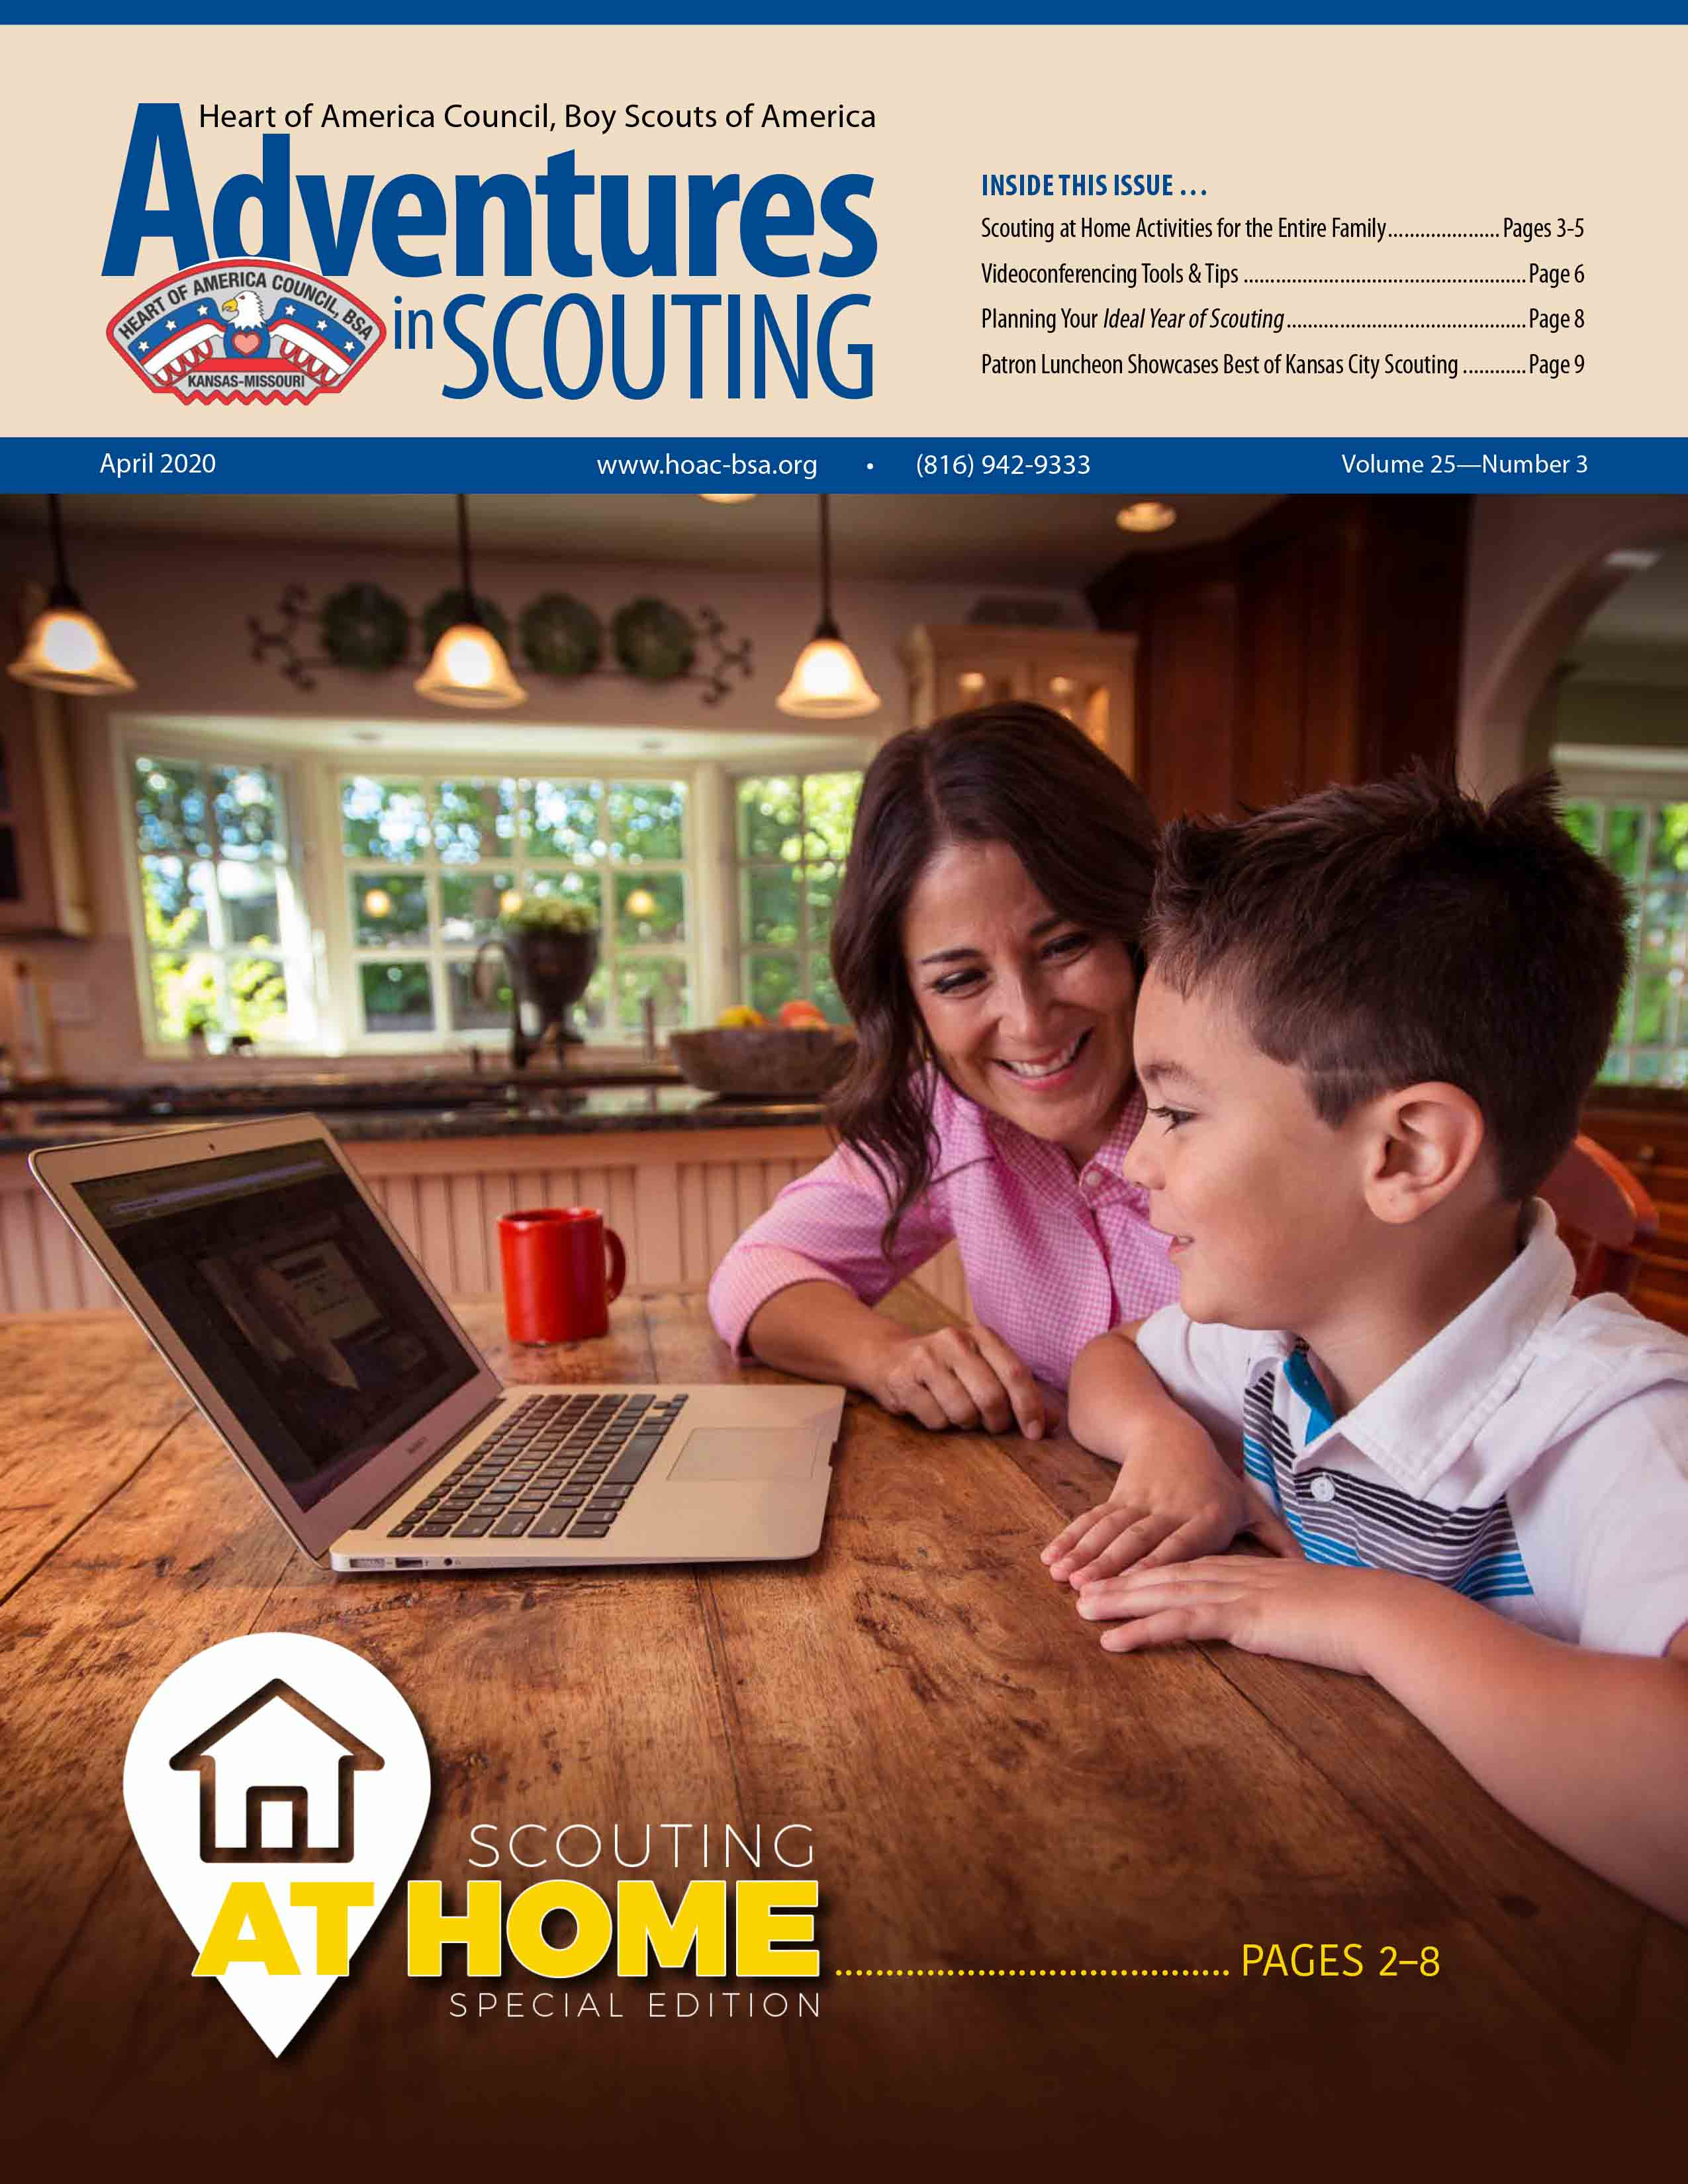 April Adventures in Scouting E-News